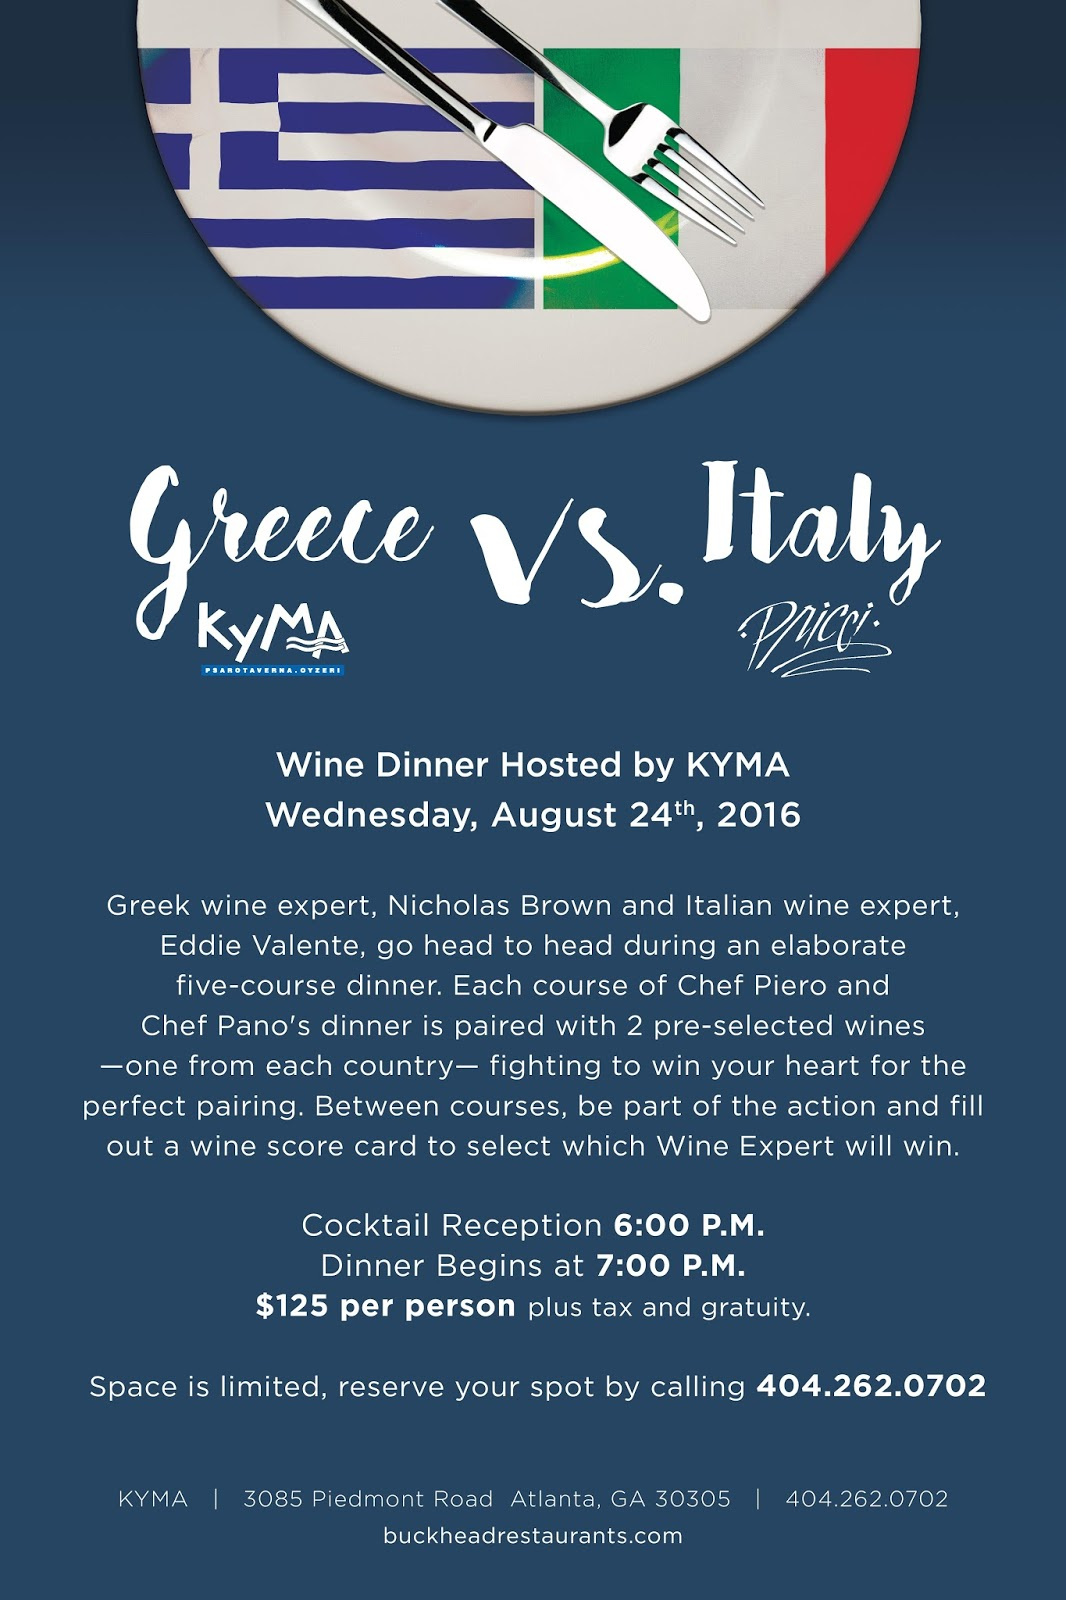 atlanta table: Greece vs. Italy Five-course Wine Dinner at Kyma